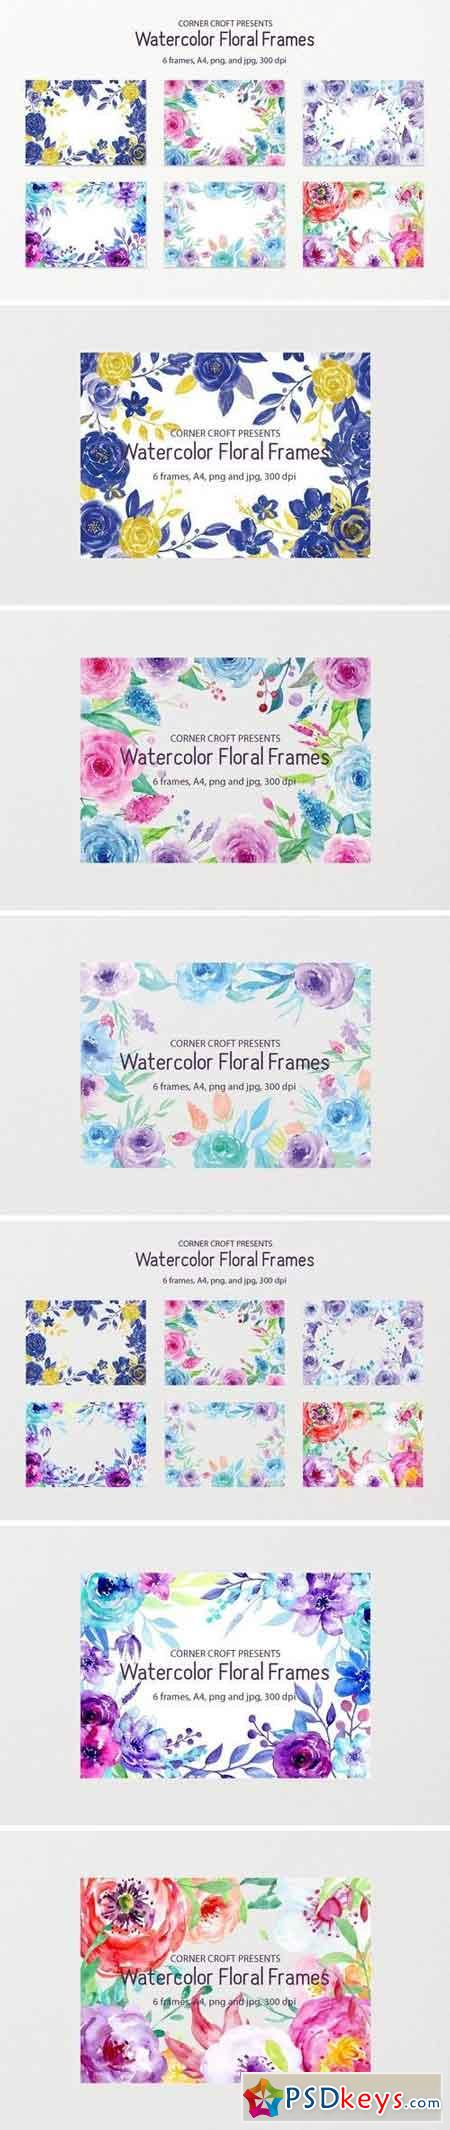 Watercolor Floral Frame Blue and Purple